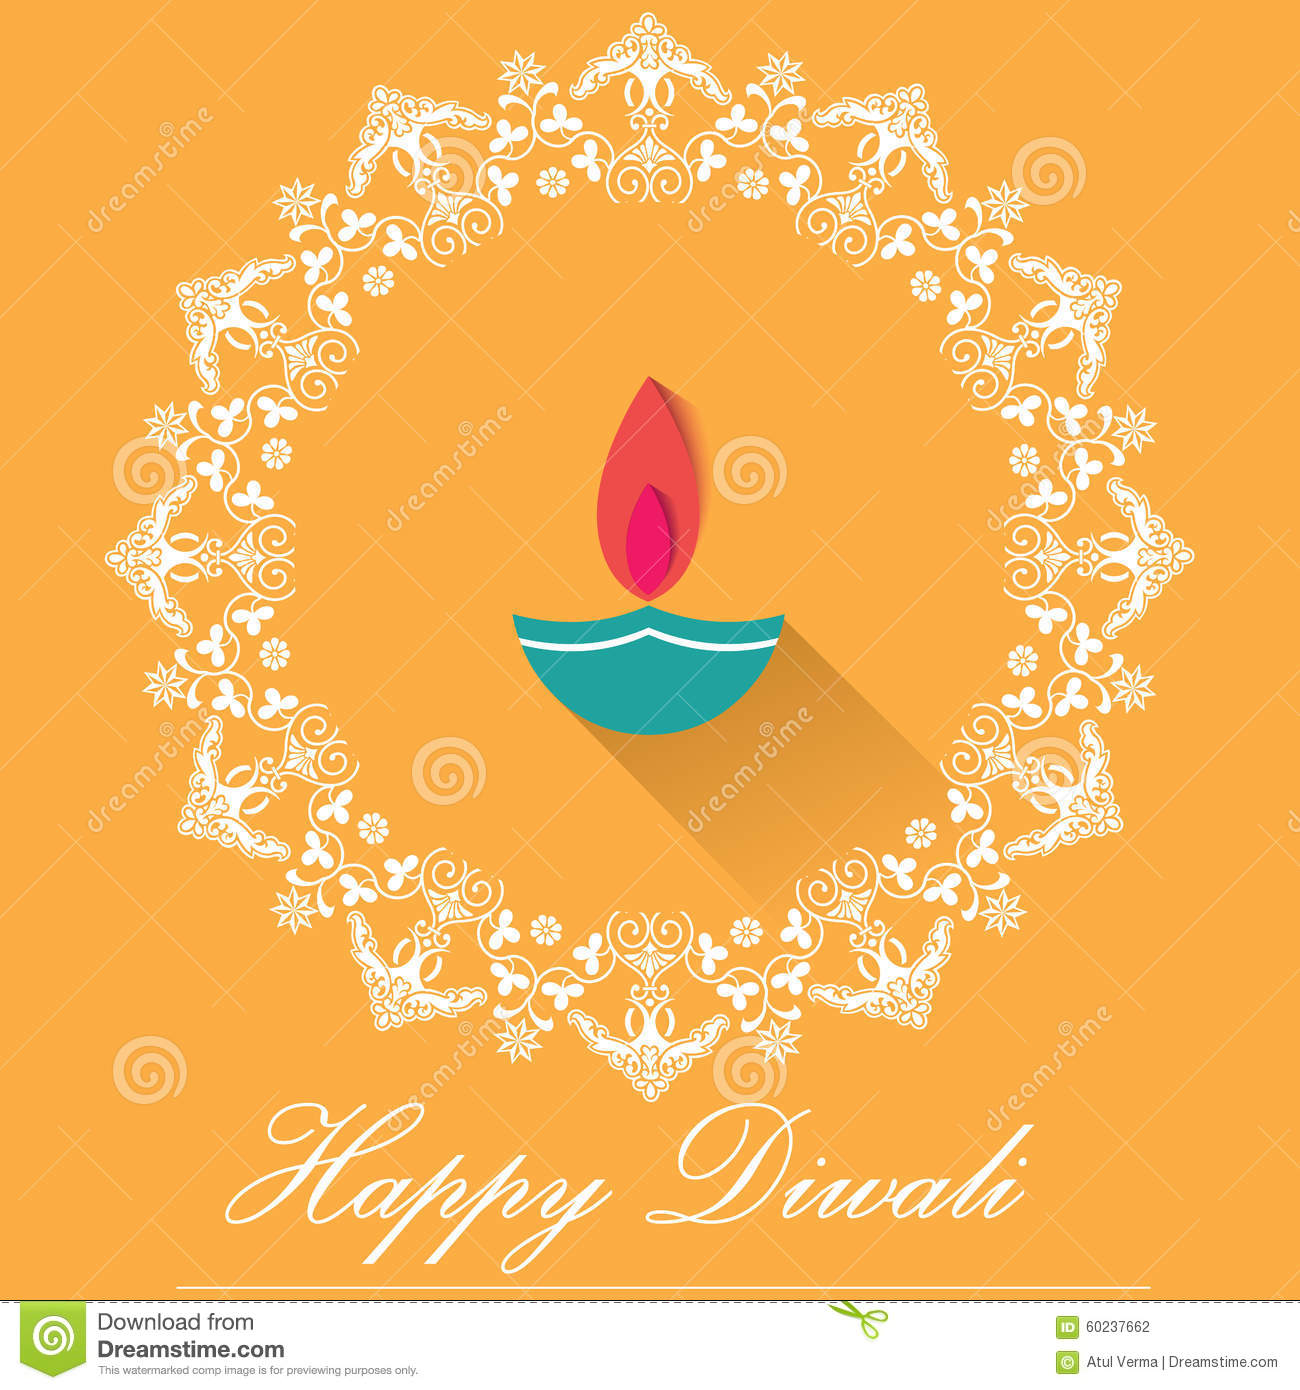 Decorative Diwali Lamps Happy Diwali Greeting Card Flat Design